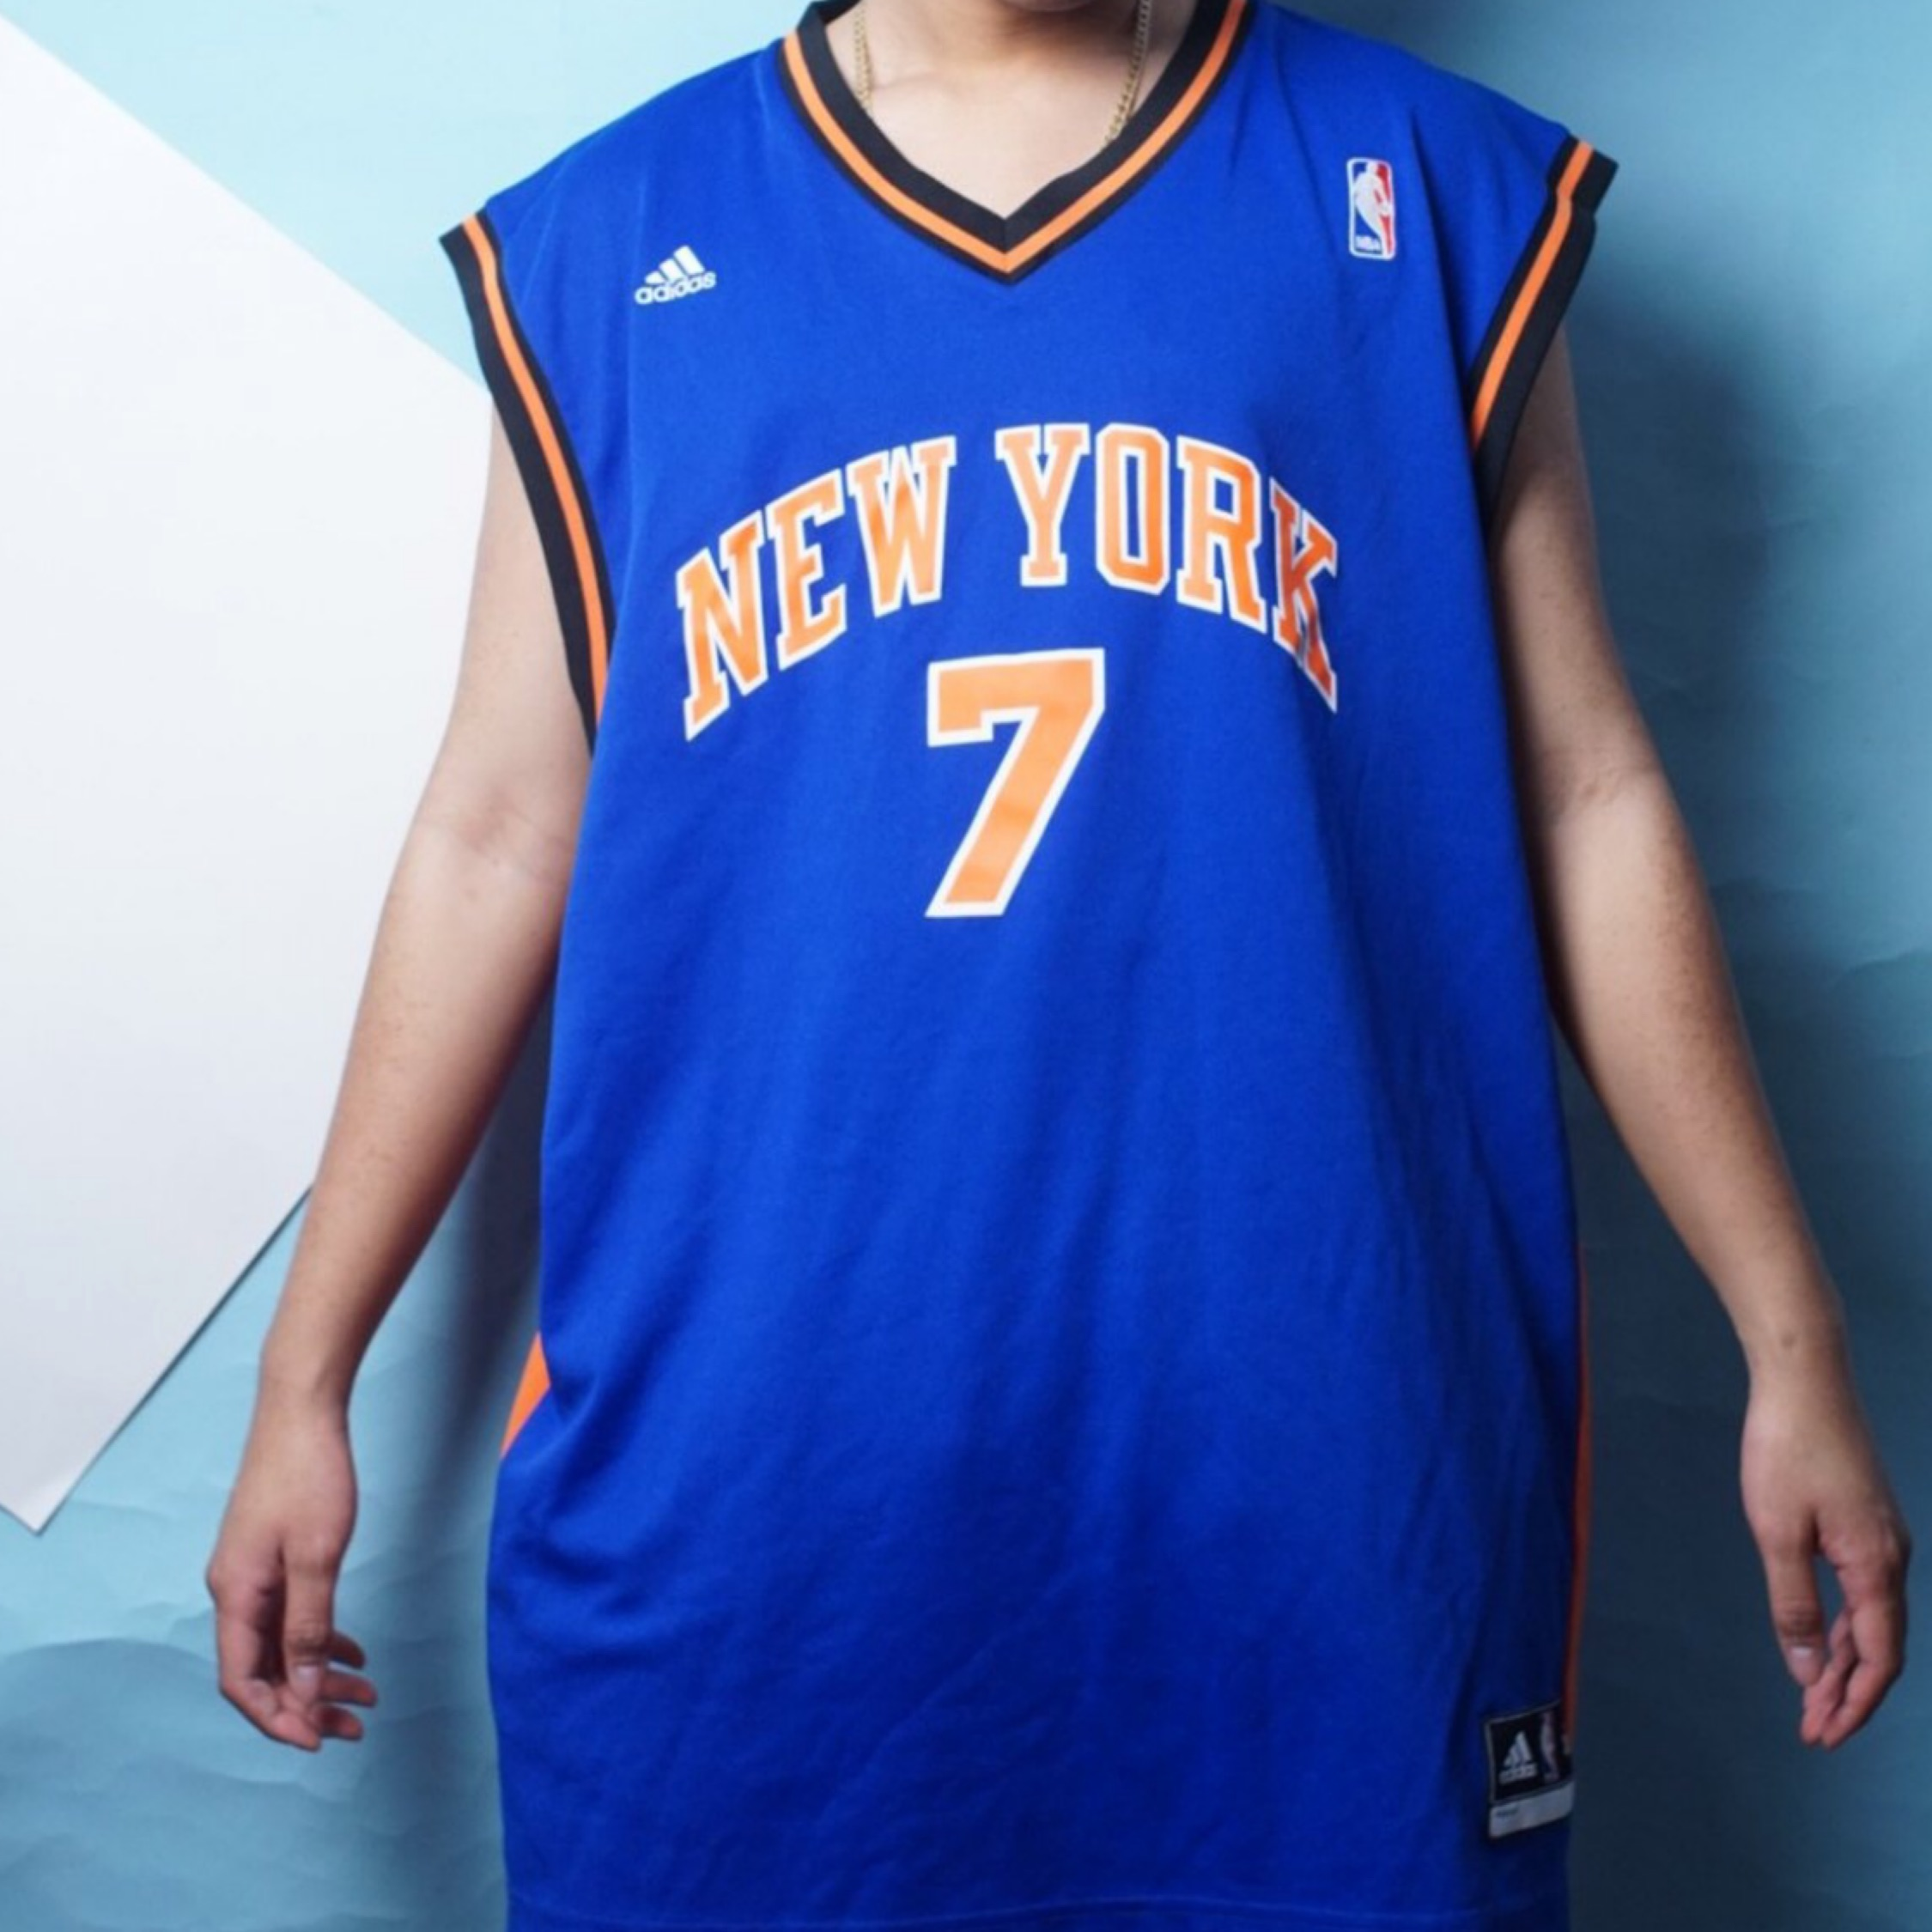 competitive price 845ec fc0b4 Adidas New York Knicks Jersey